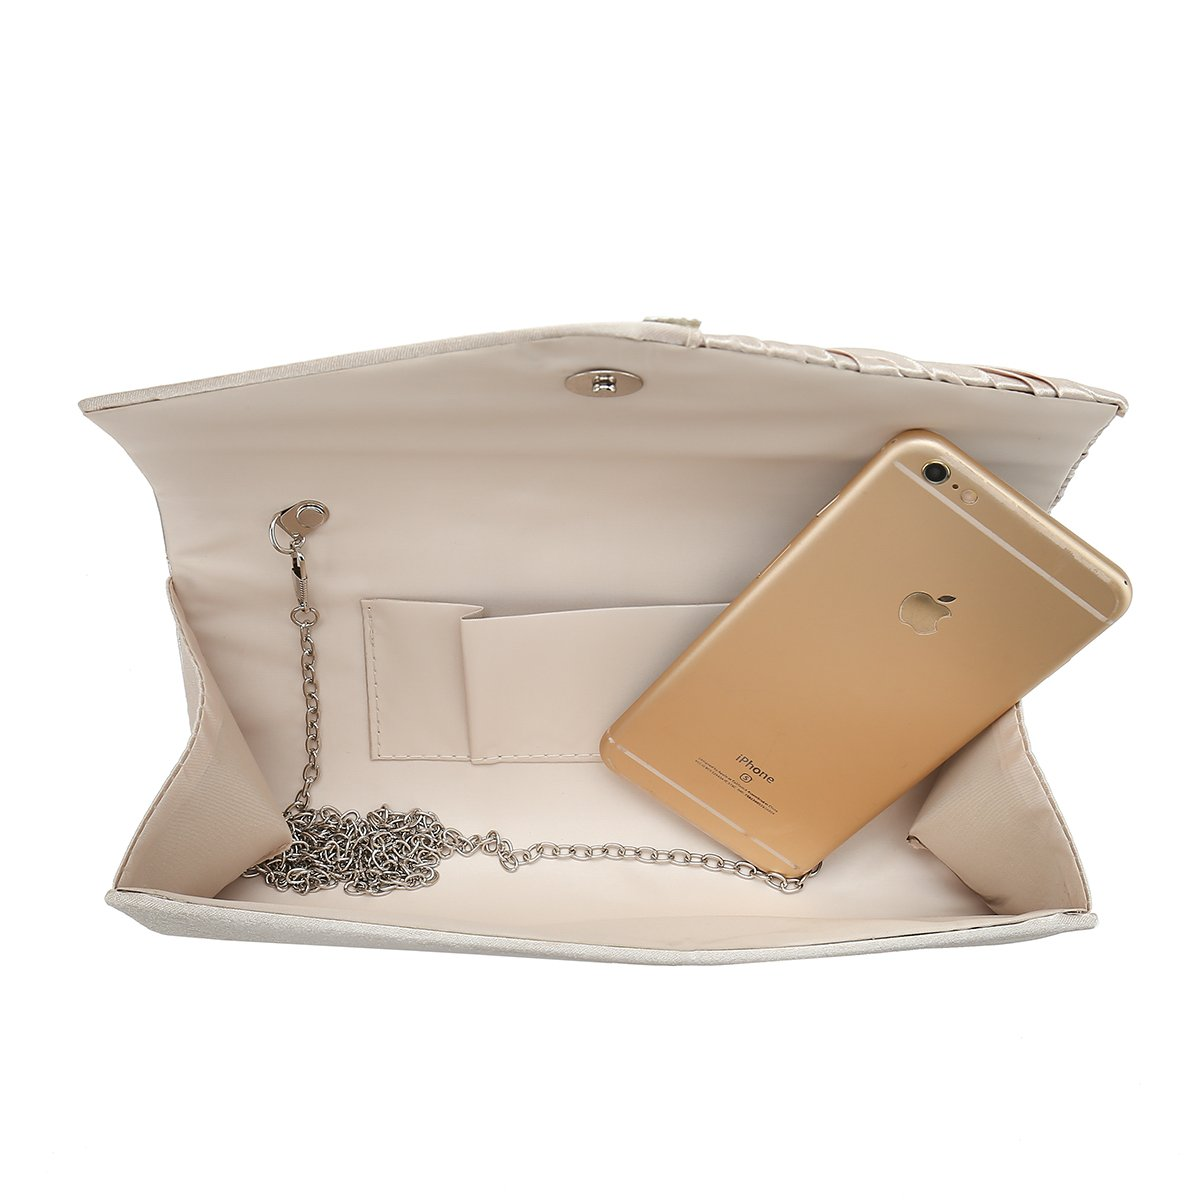 Charming Tailor Evening Handbag Crystal Embellished and Pleated Satin Clutch (Champagne) by Charming Tailor (Image #6)